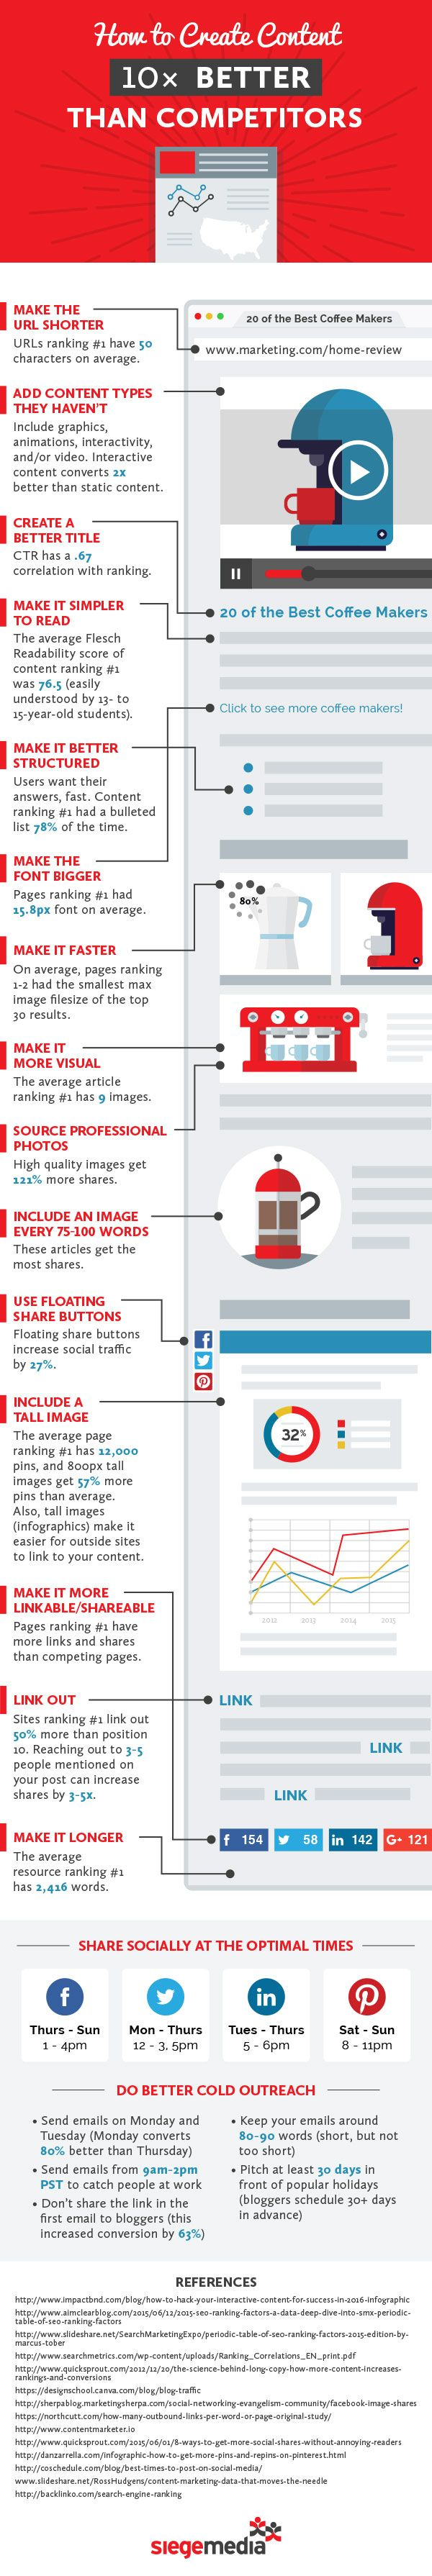 [INFOGRAPHIC] How To Create 10x Better Content Than Competitors—Short URL; Titles; K.I.S.S.; Readable font; Images; Share buttons; Links; Details>